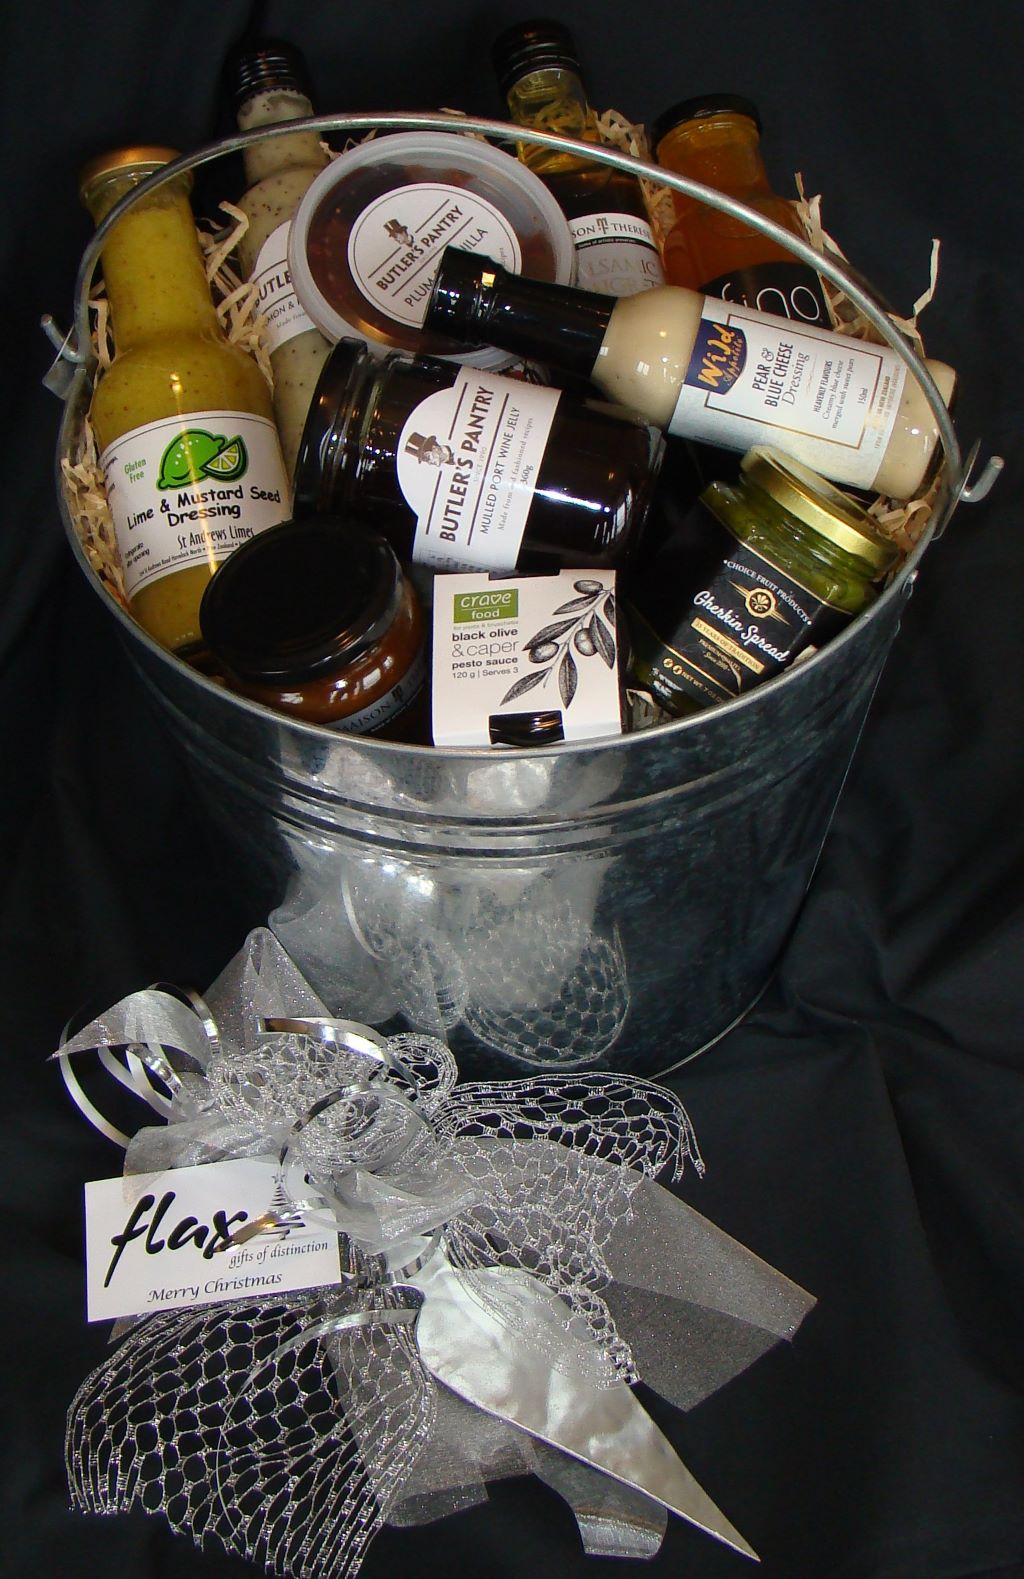 Flax gifts of distinction marshland christchurch same day delivery within christchurch visa and mastercard accepted gluten free options available negle Gallery